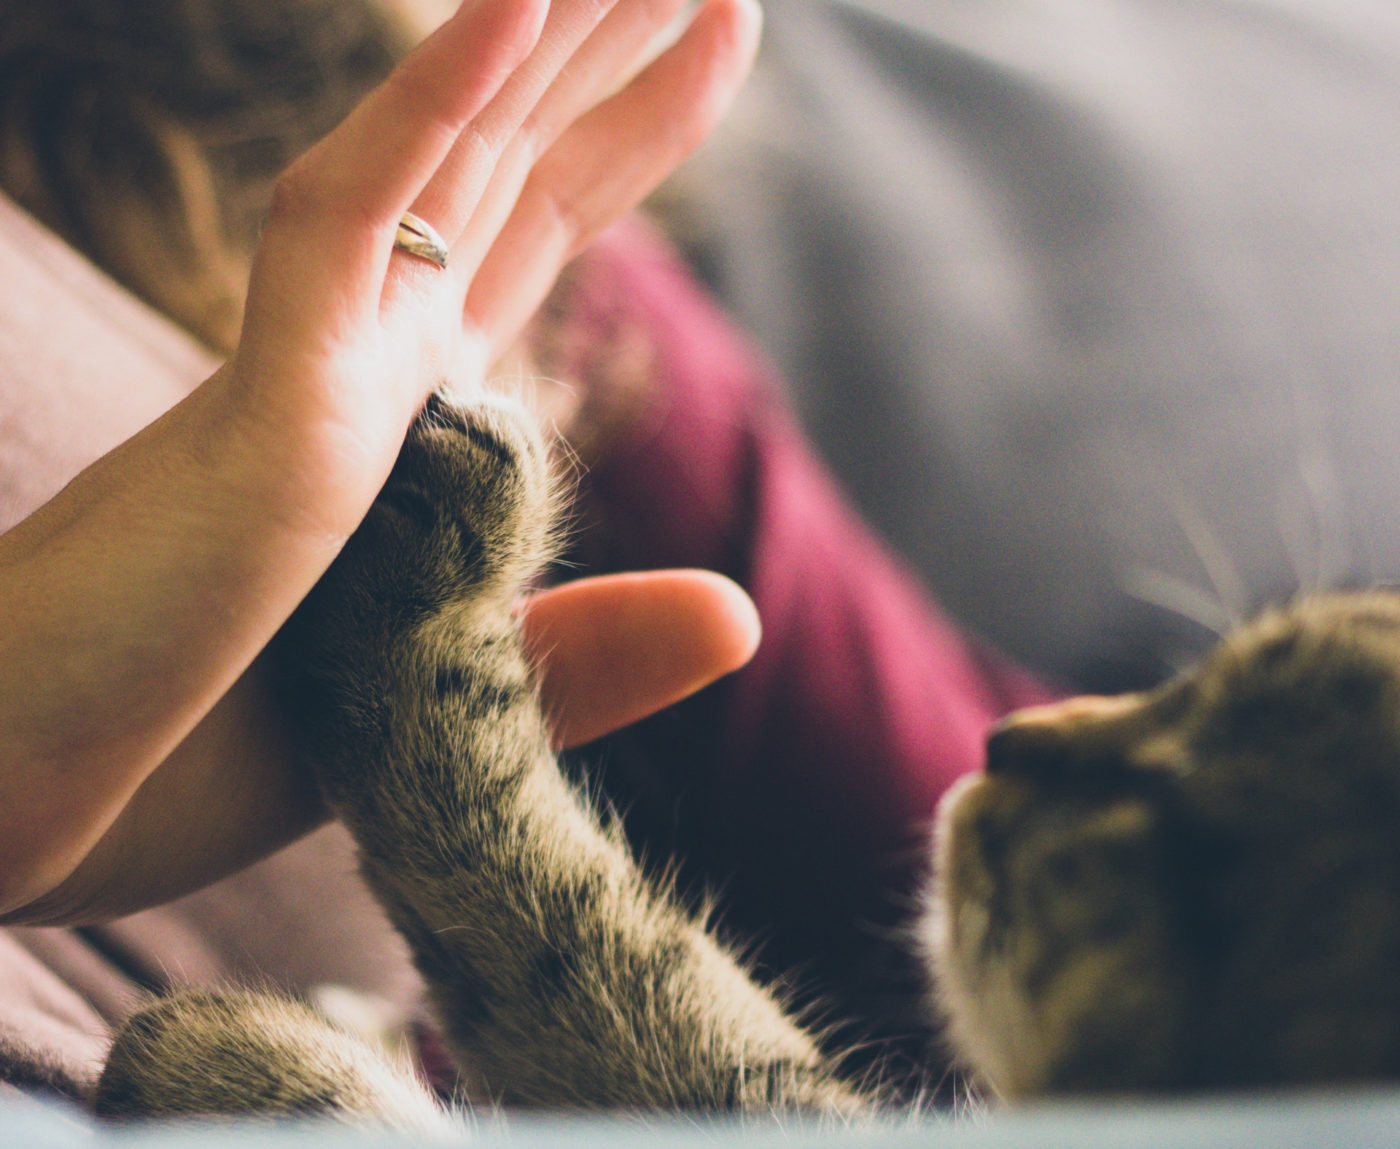 Cat High Five via Pexels